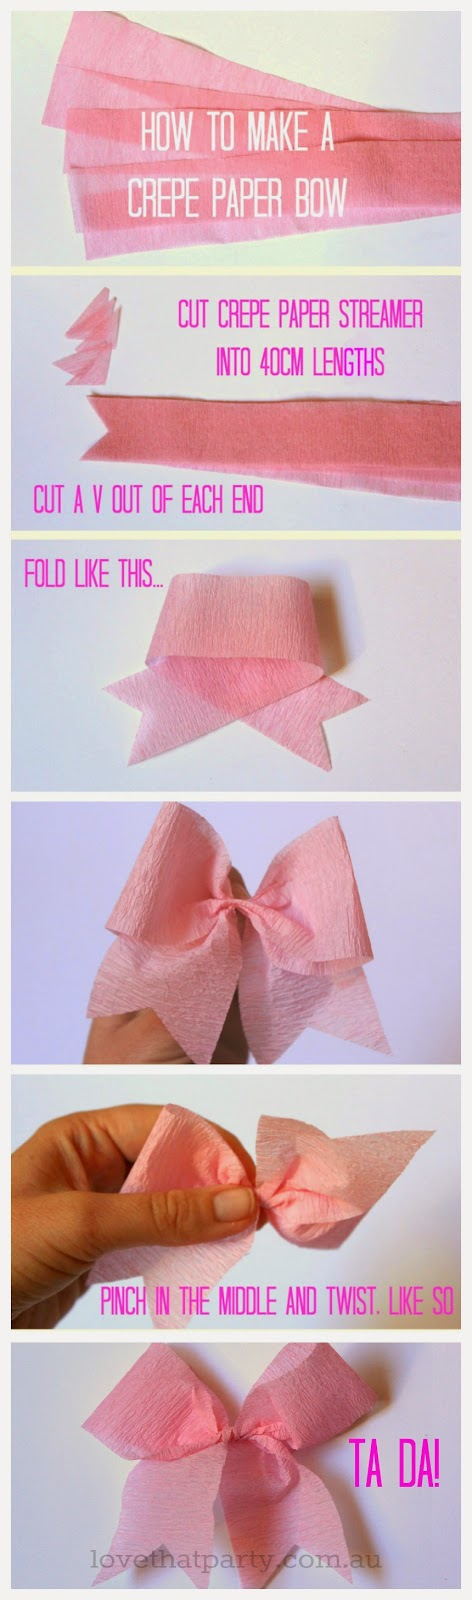 How to make a paper bow using those cheap paper streamers!  www.lovethatparty.com.au